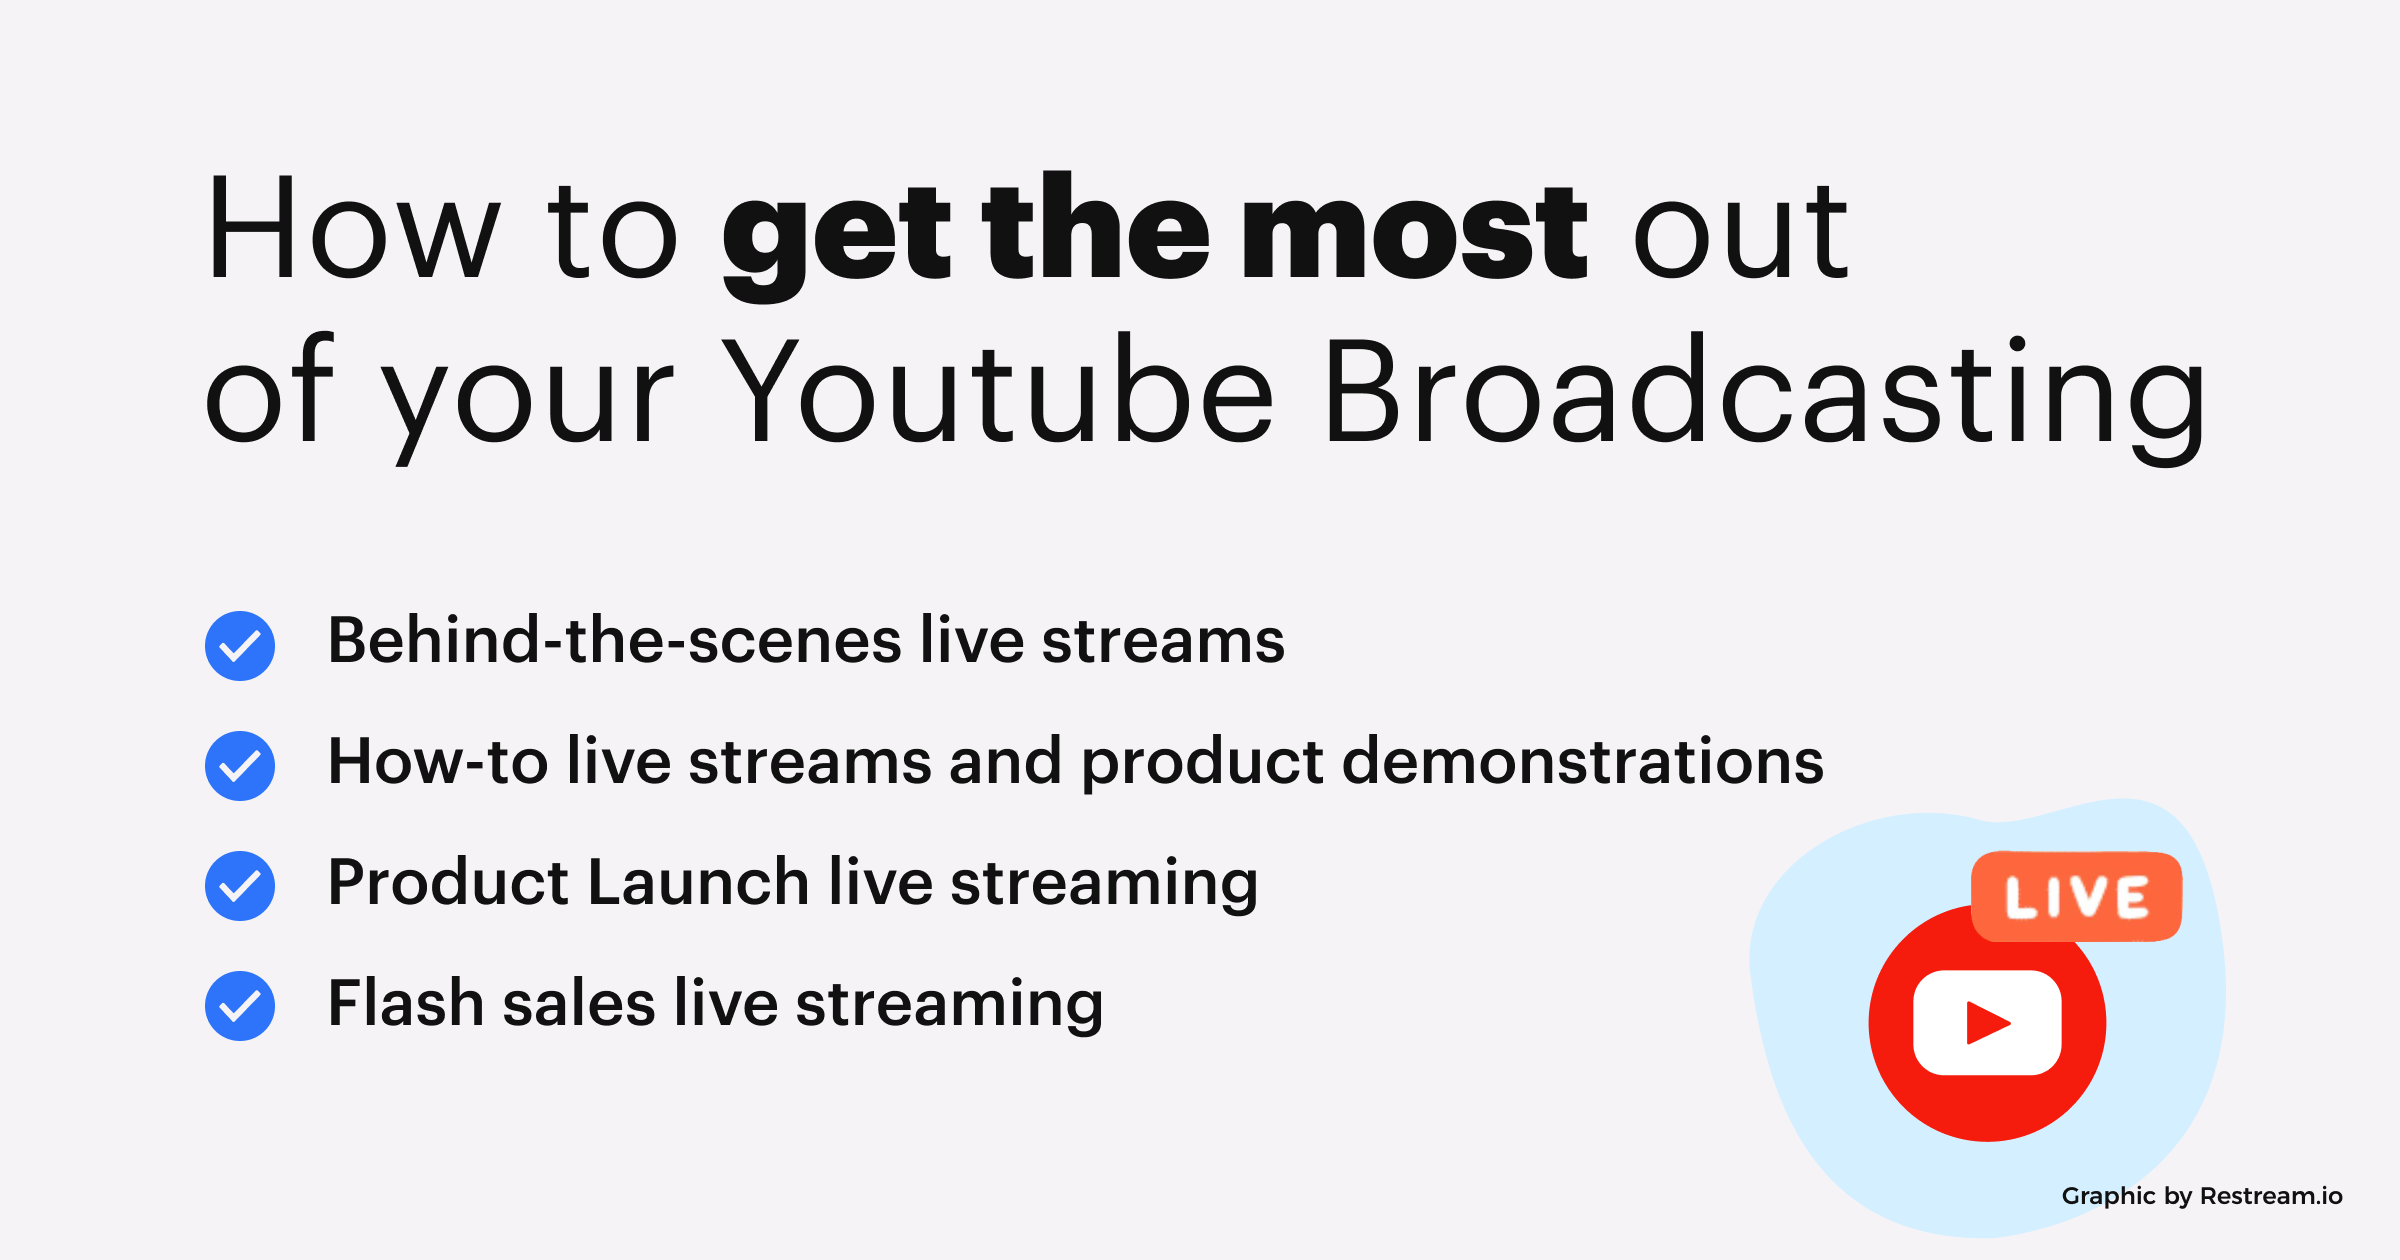 How to get the most out of your Youtube Broadcasting